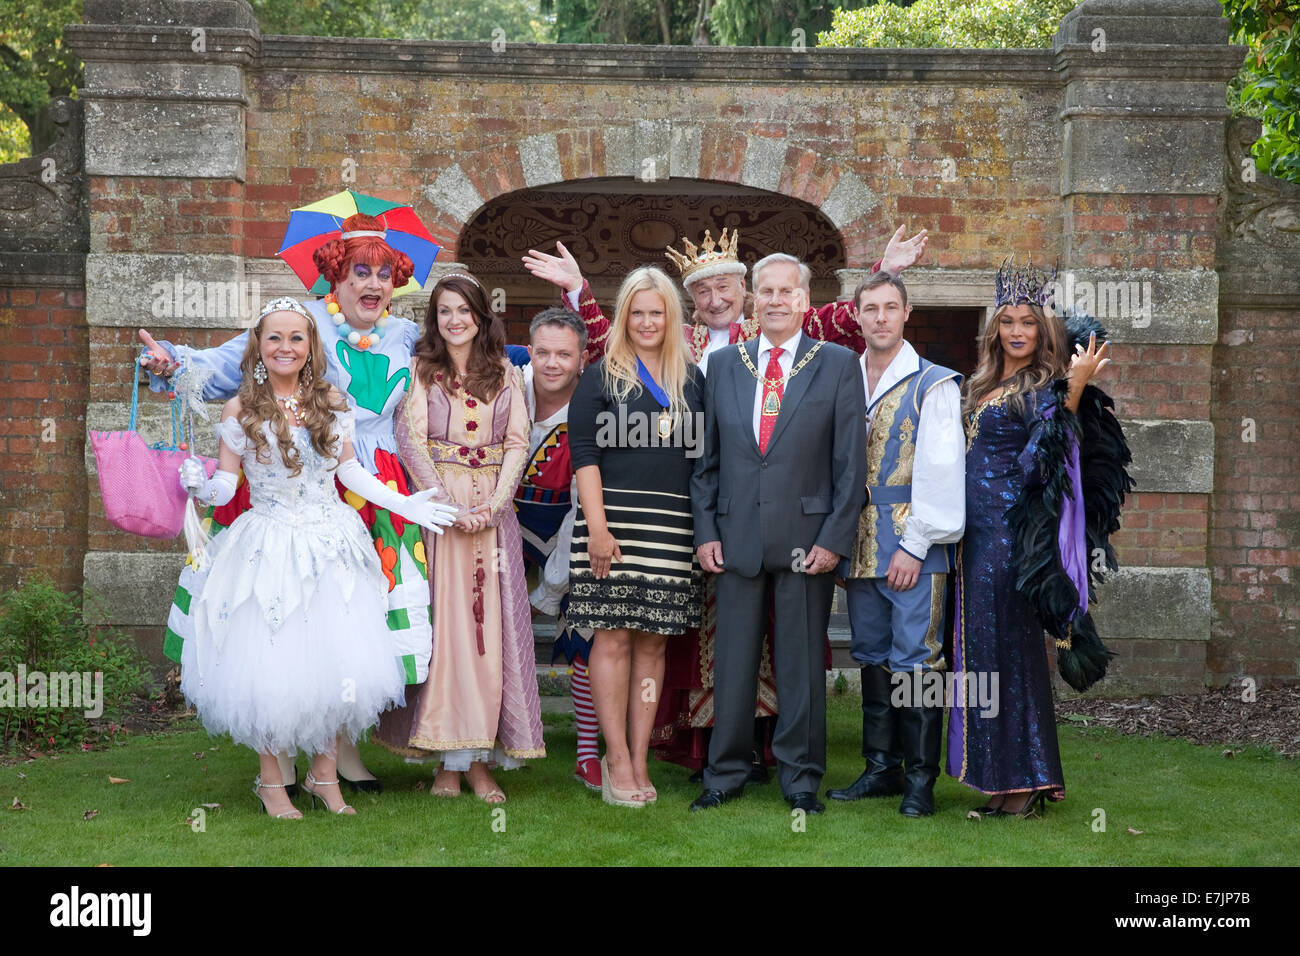 The Mayor and Deputy Mayor of Bromley join the cast at Bromley's